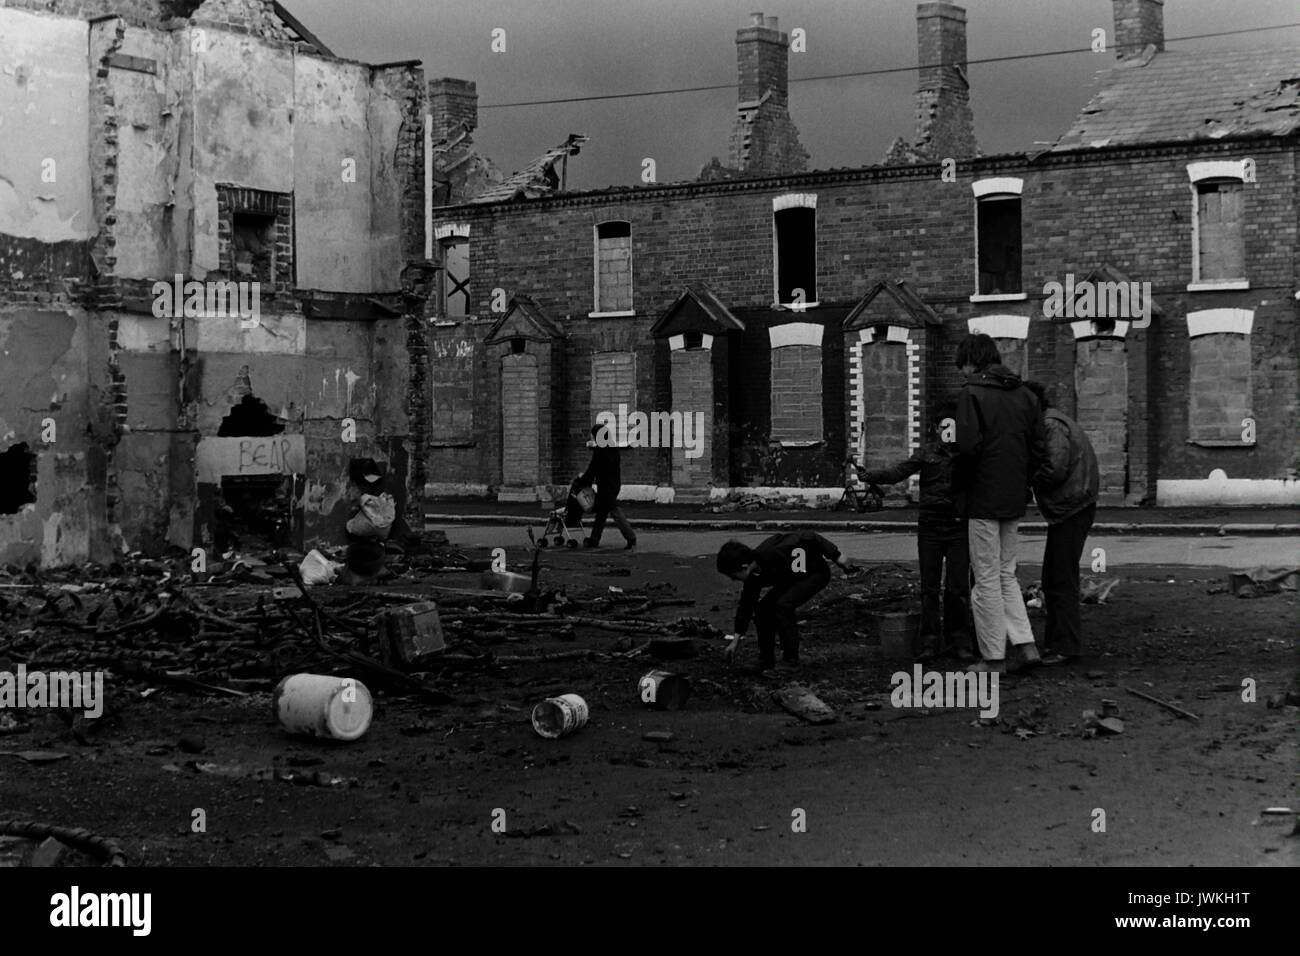 07ecc16f0d53 Belfast s streets and daily life pictured during the